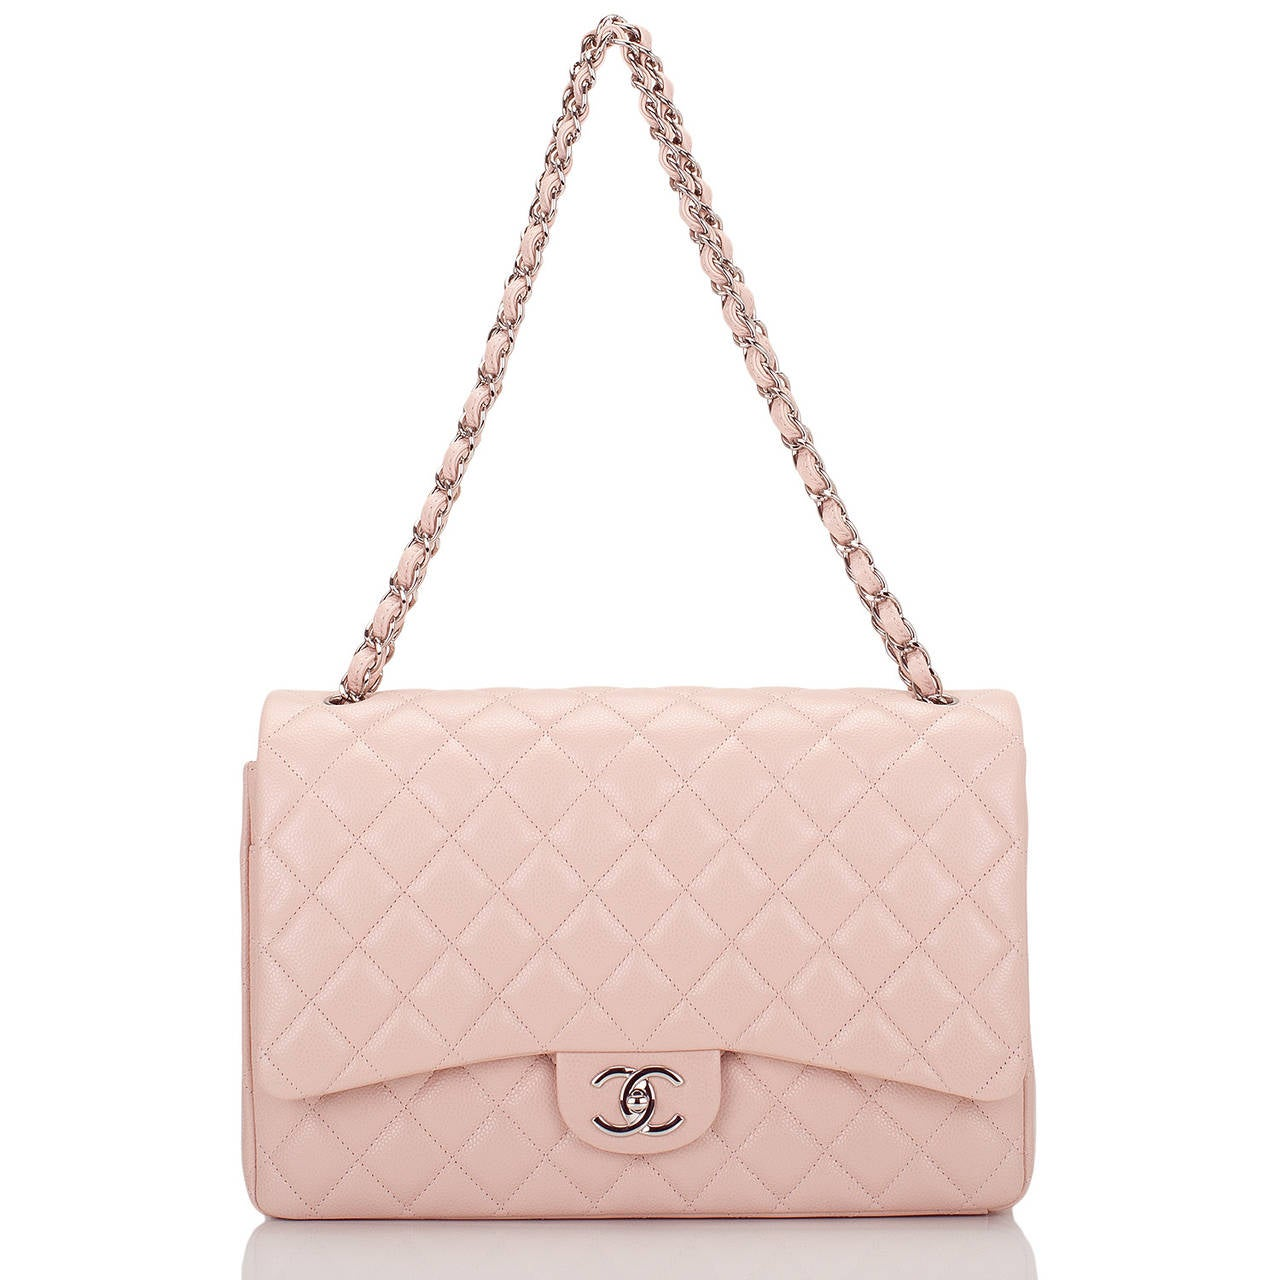 Chanel Light Pink Quilted Caviar Maxi Classic Double Flap Bag For Sale 1